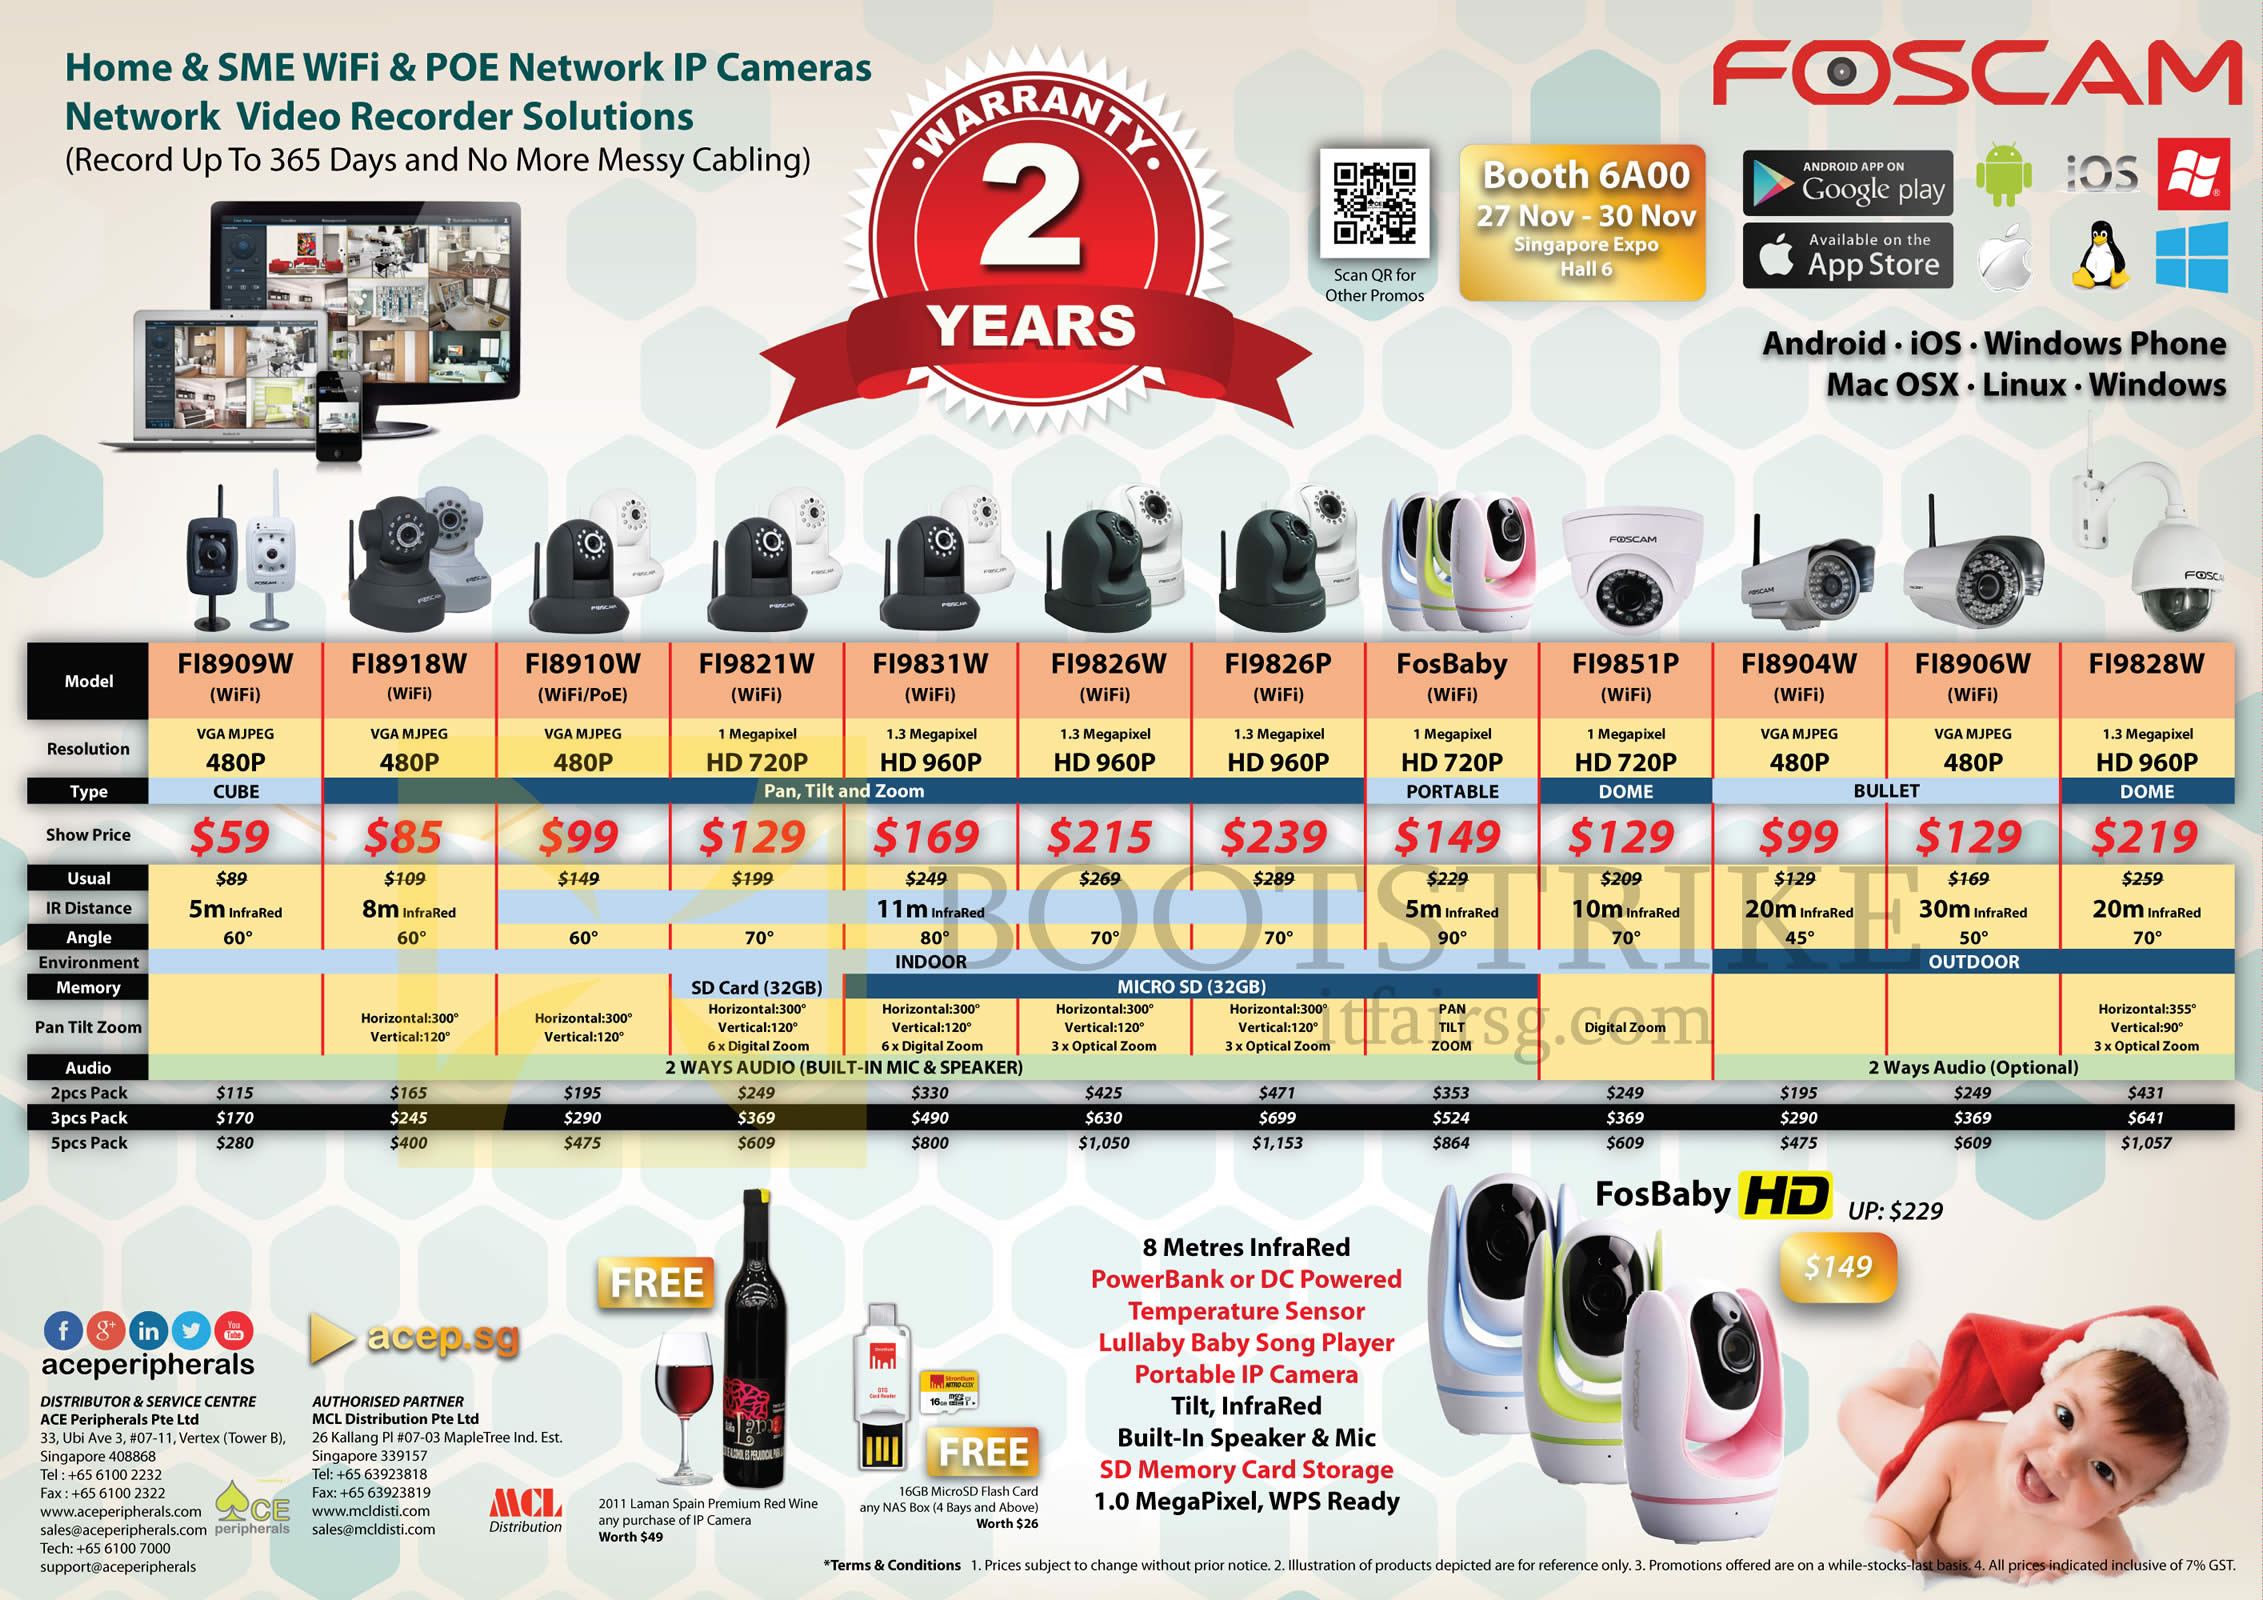 SITEX 2014 price list image brochure of Ace Peripherals ACTi Foscam Stand Alone Network IP POE WiFi Camera FI8909W, FI8918W, FI8910W, FI9821W, FI9831W, FI 9826W, FosBaby, FI9851P, FI8904W, FI8906W